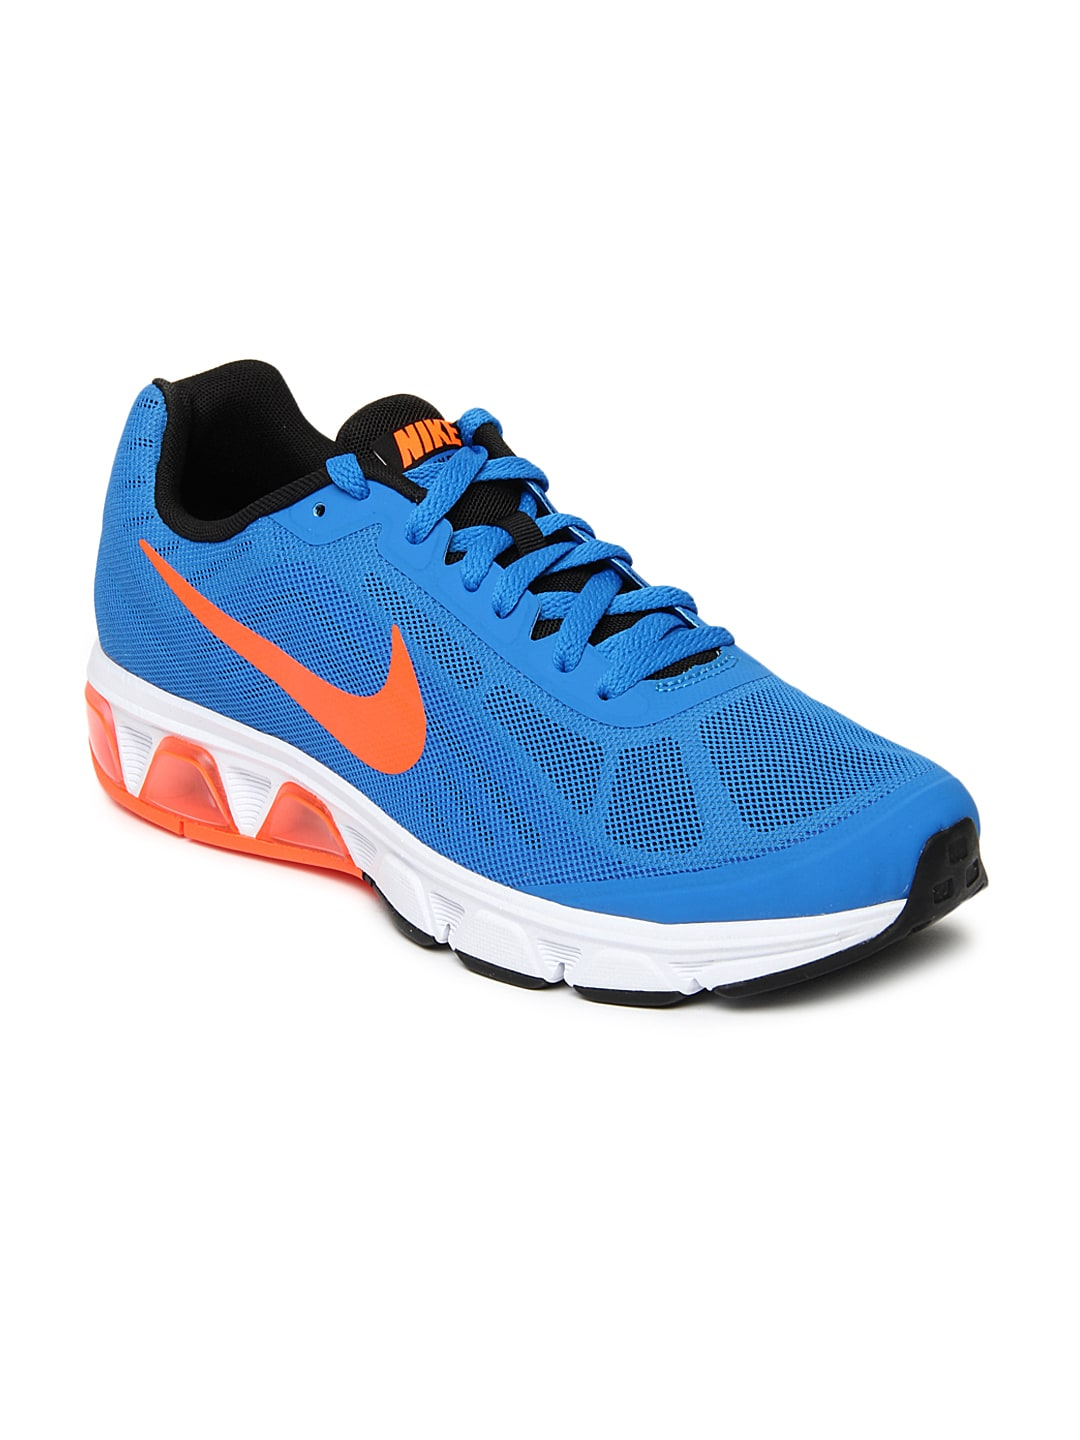 Nike Shoes Pics And Price In India